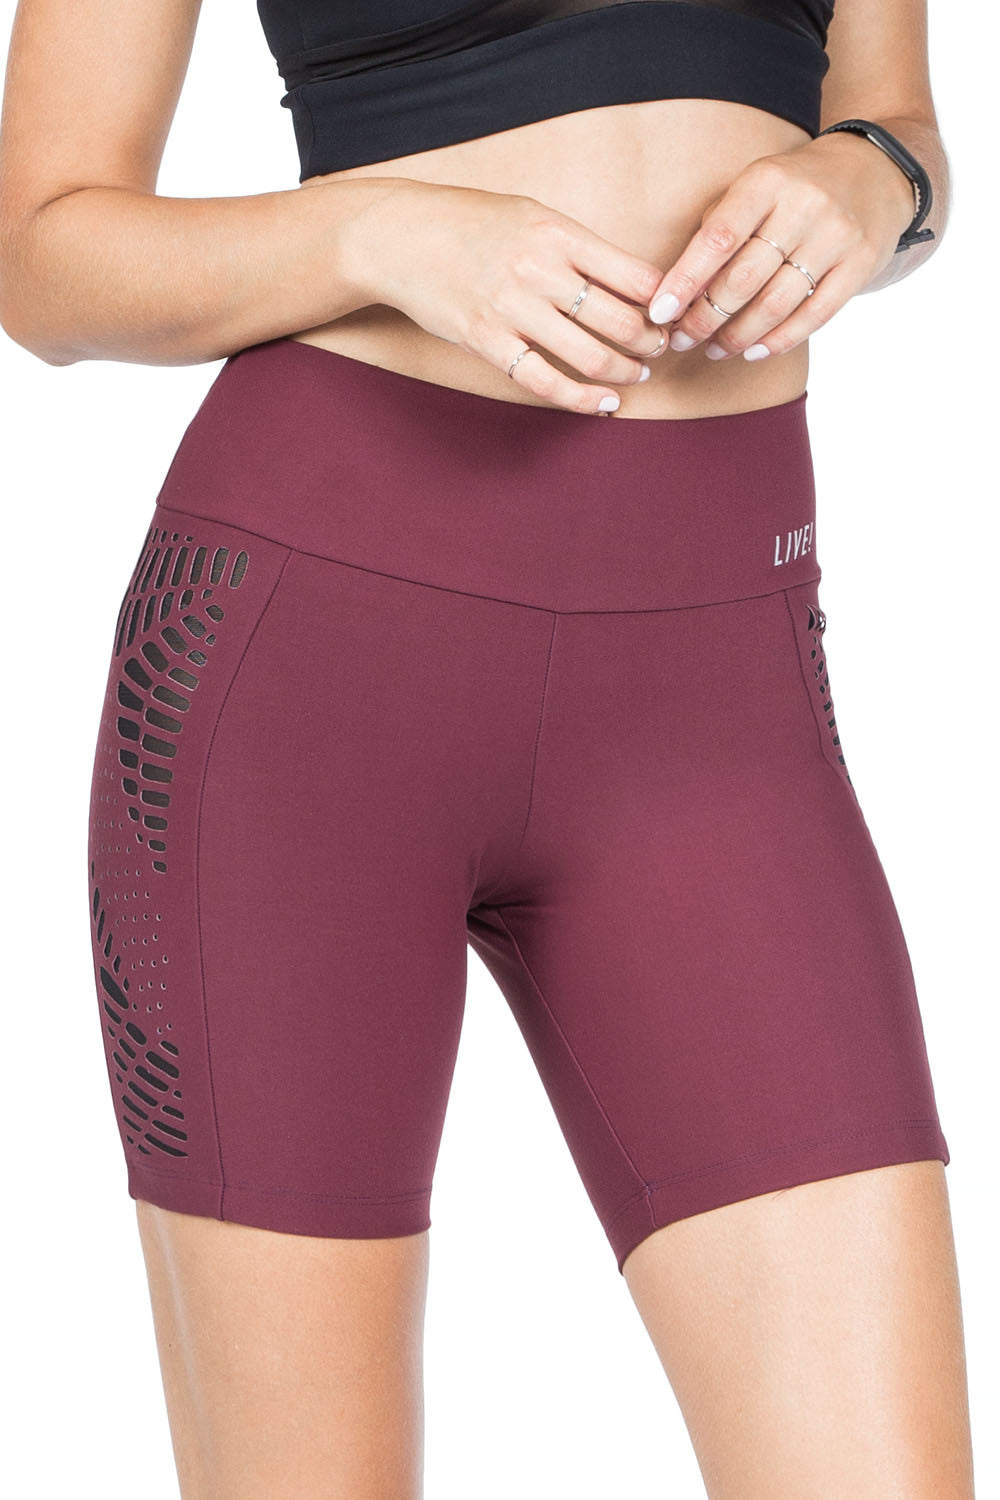 Laser Illusion Compress Cyclist Shorts